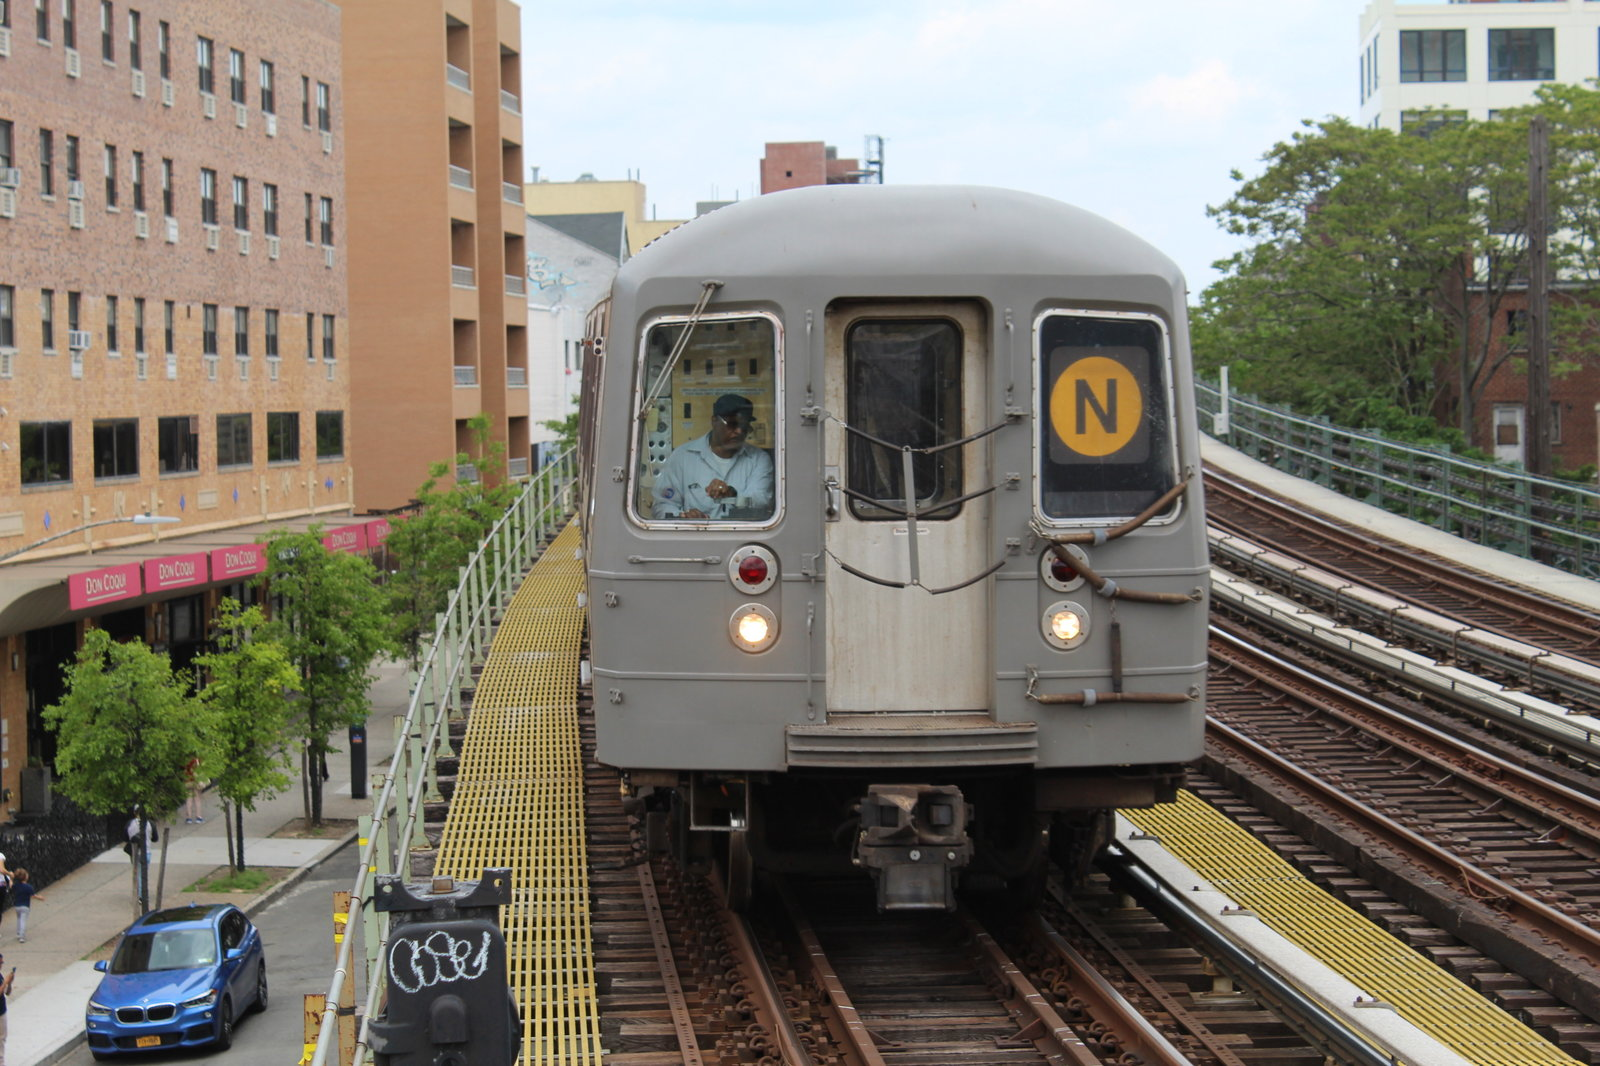 R68 (N) train approaching 30th Avenue